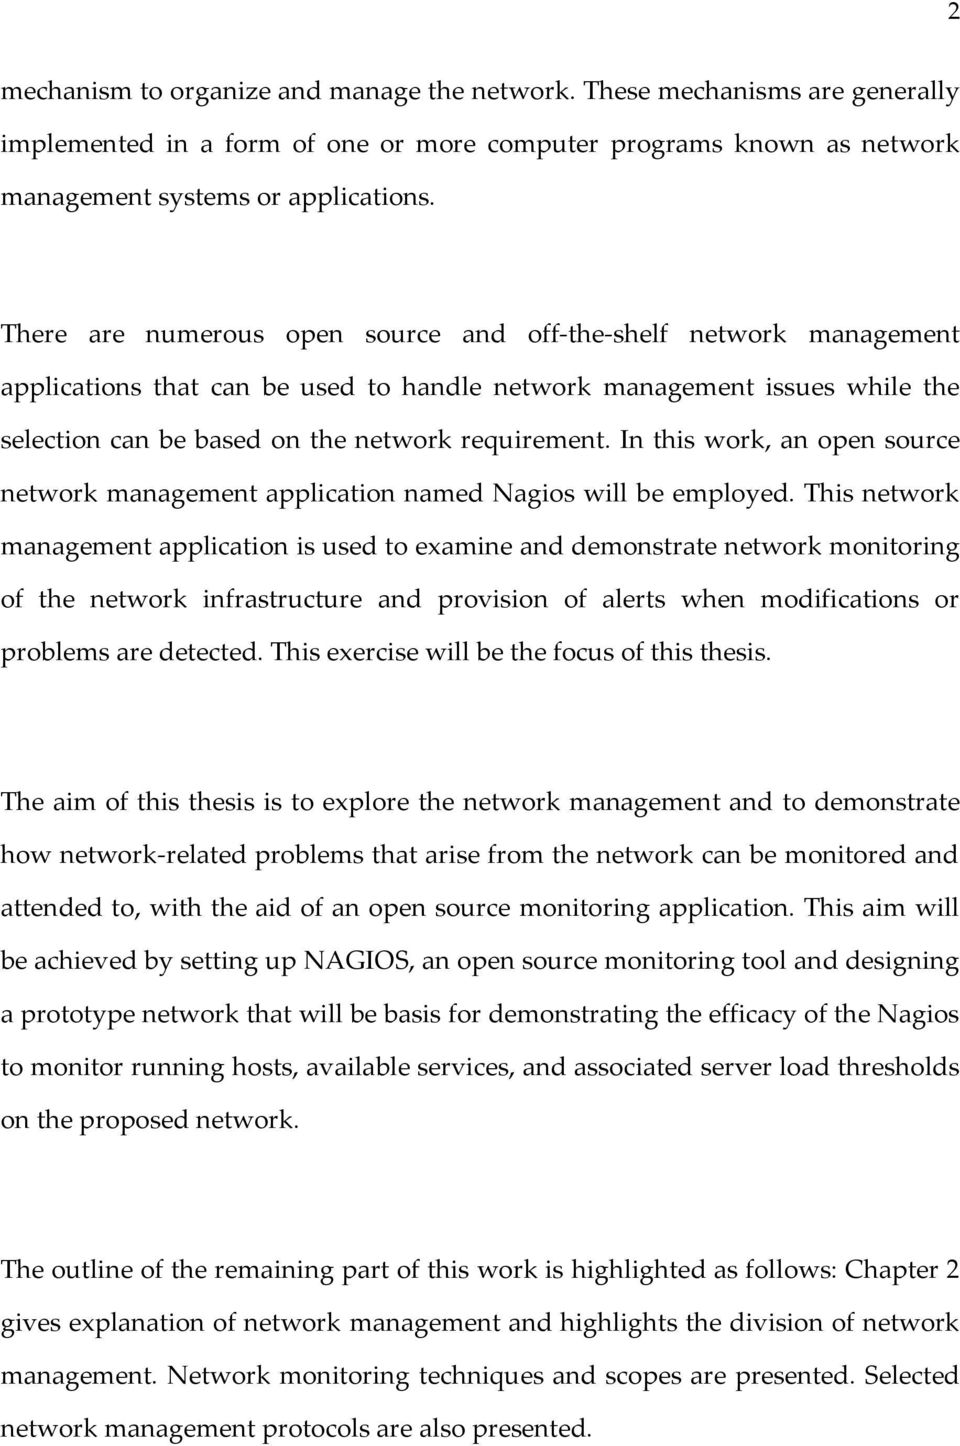 In this work, an open source network management application named Nagios will be employed.